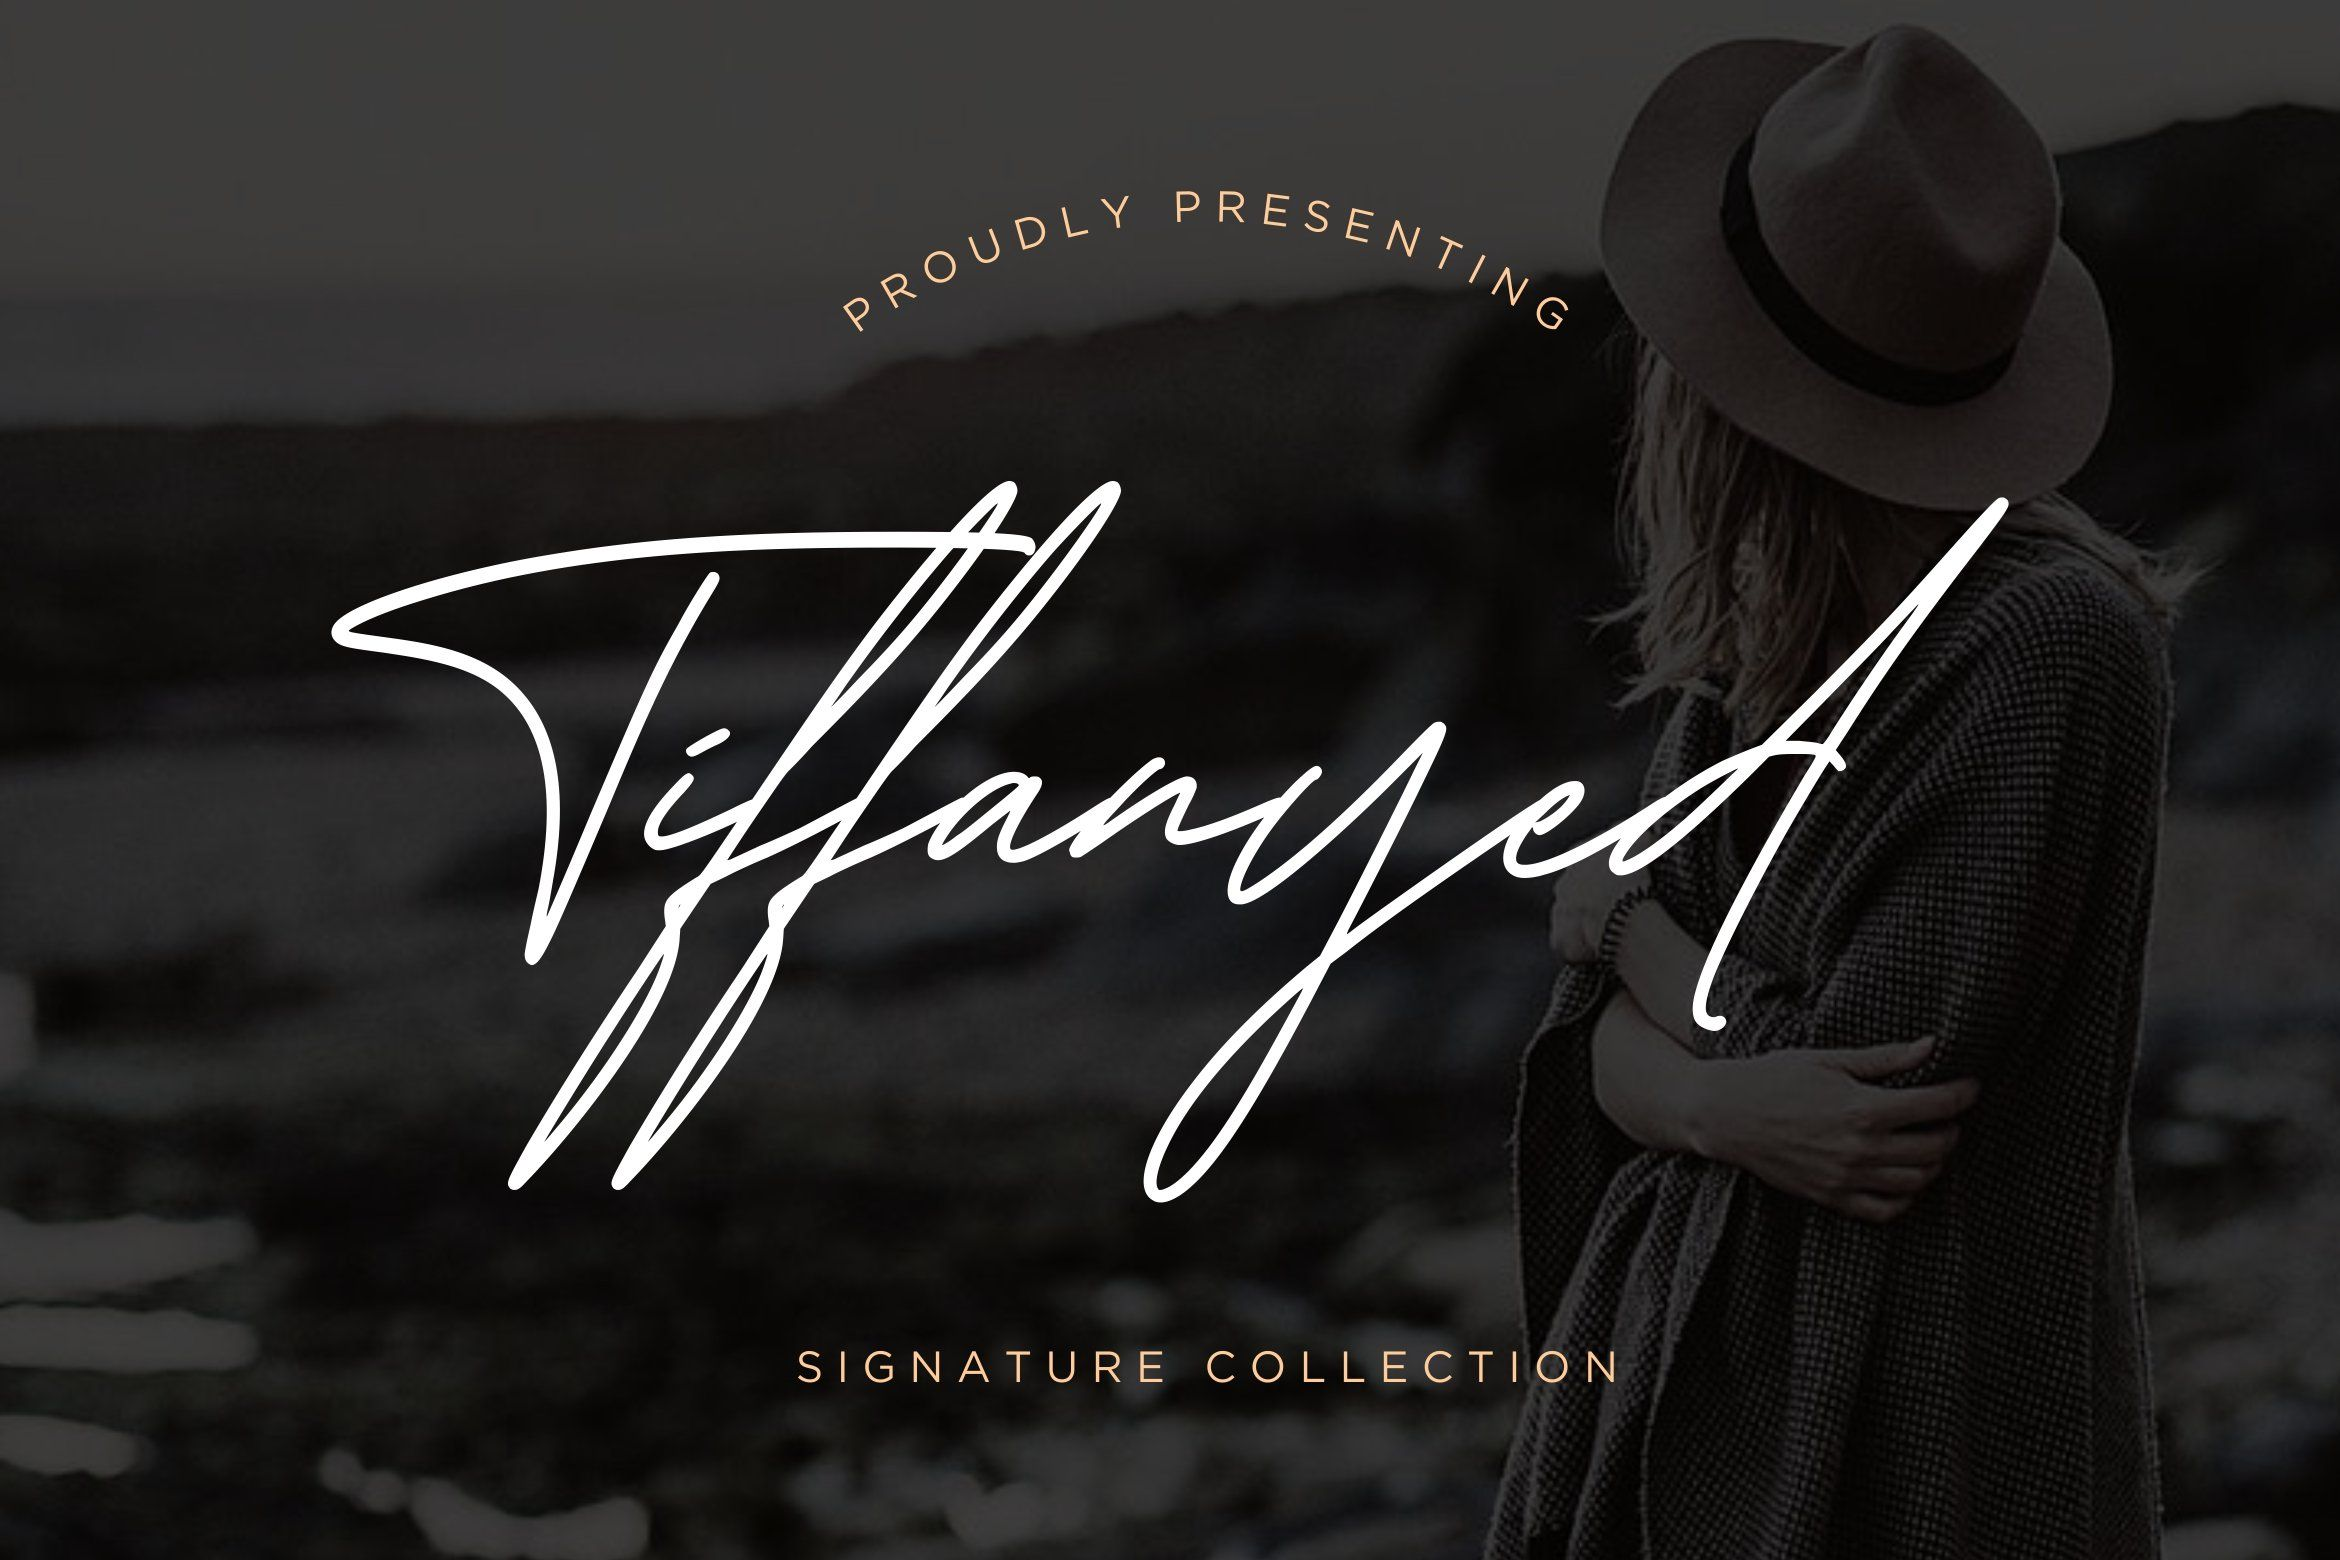 Tiffanyed Signature Collection in 2020 Signature fonts